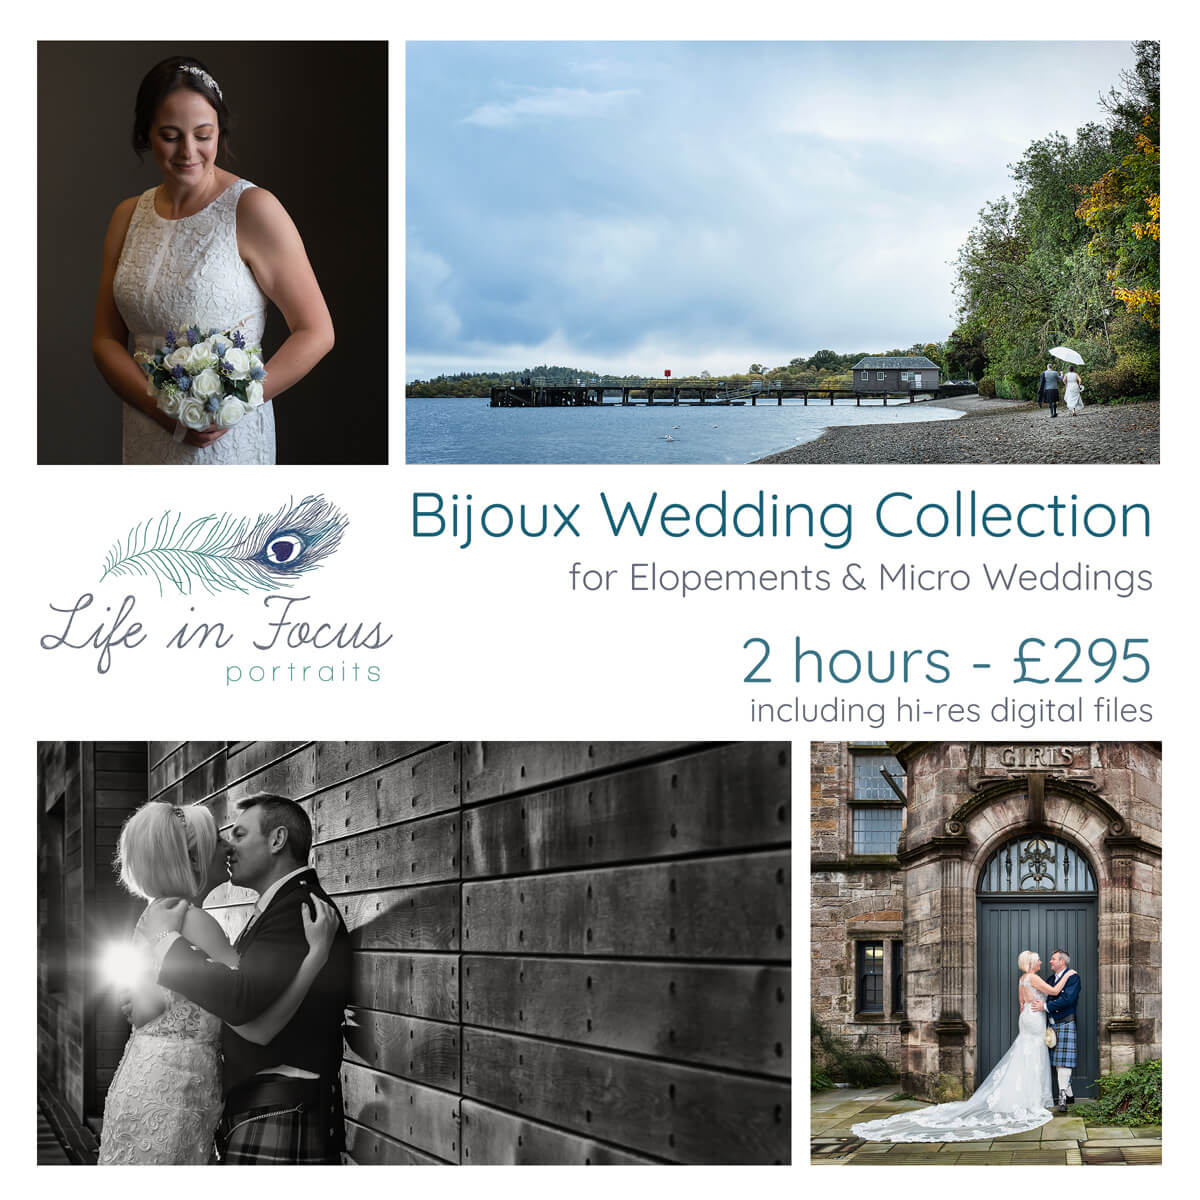 wedding photos and pricing for micri wedding Loch Lomond and Helensburgh